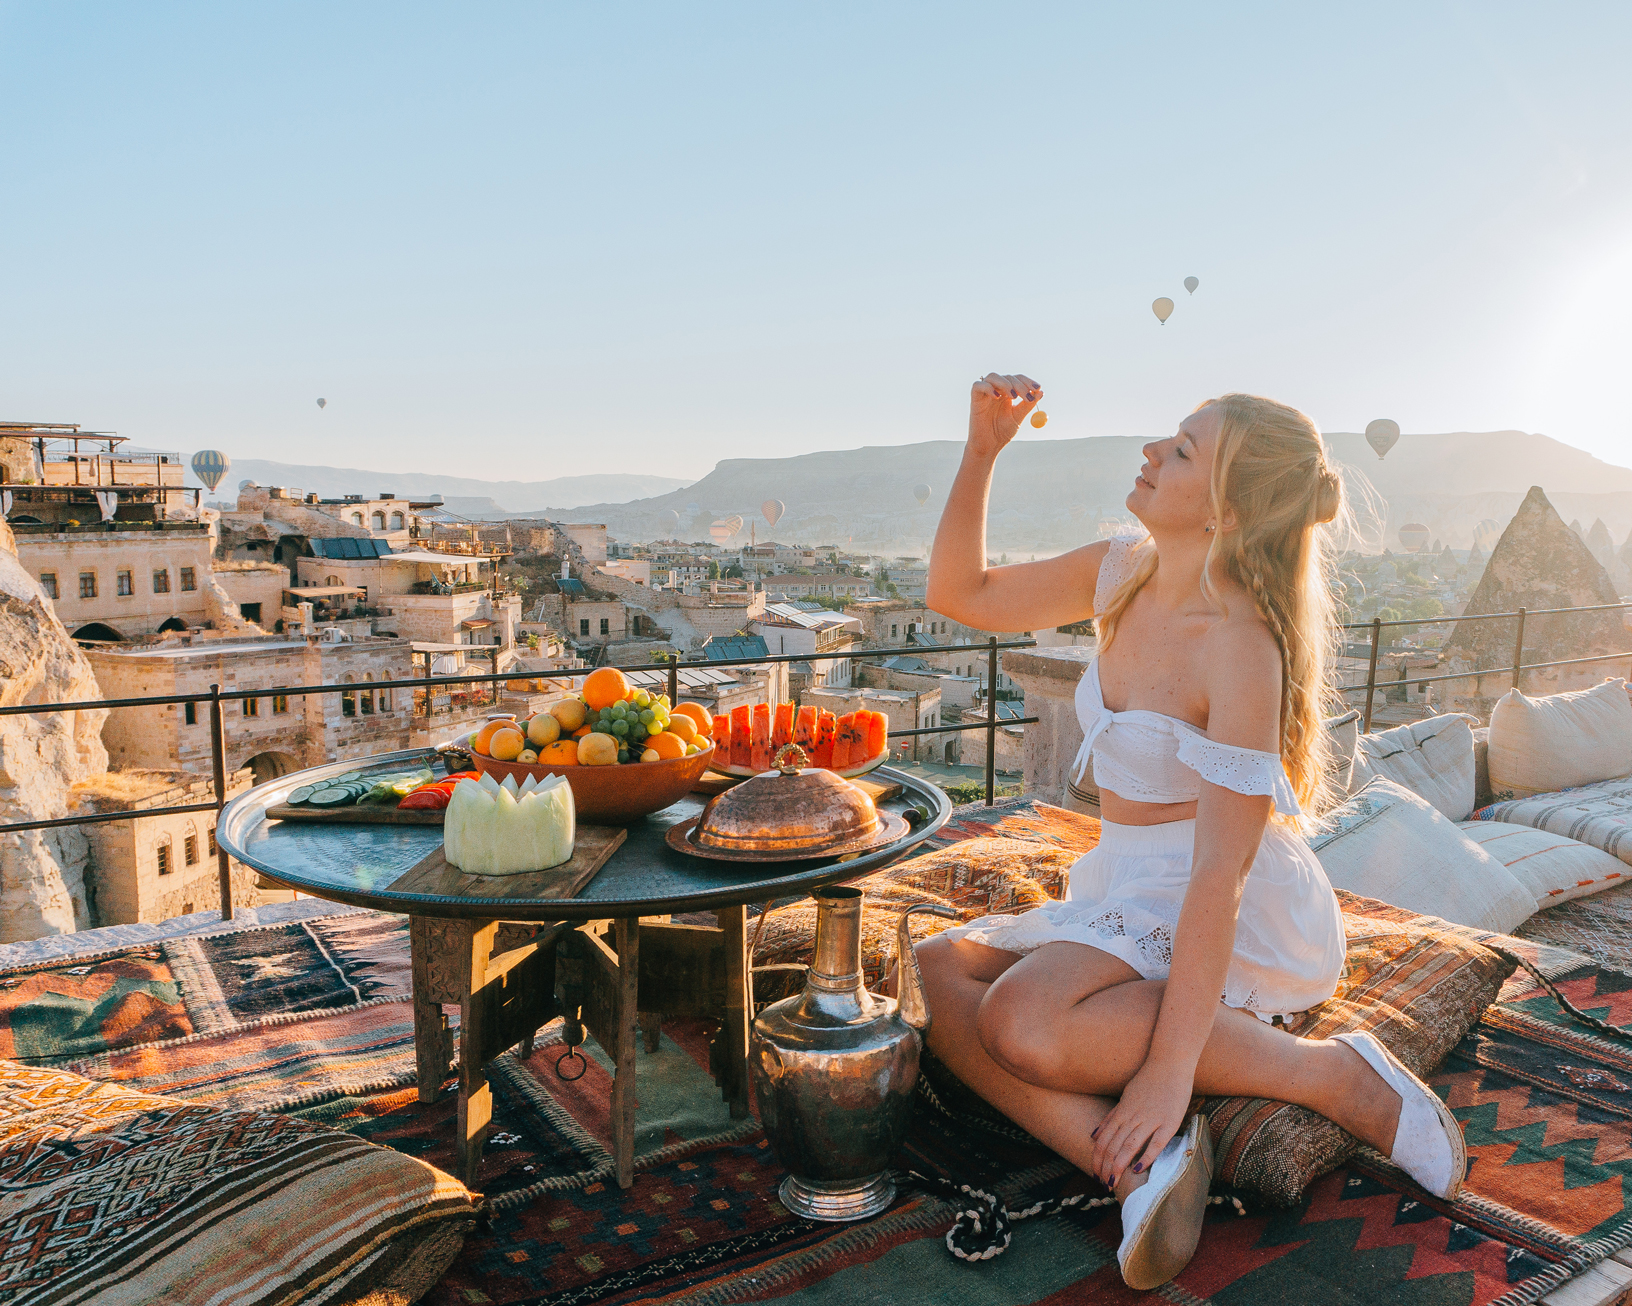 Top 5 Instagrammable Places To Visit In Cappadocia Where